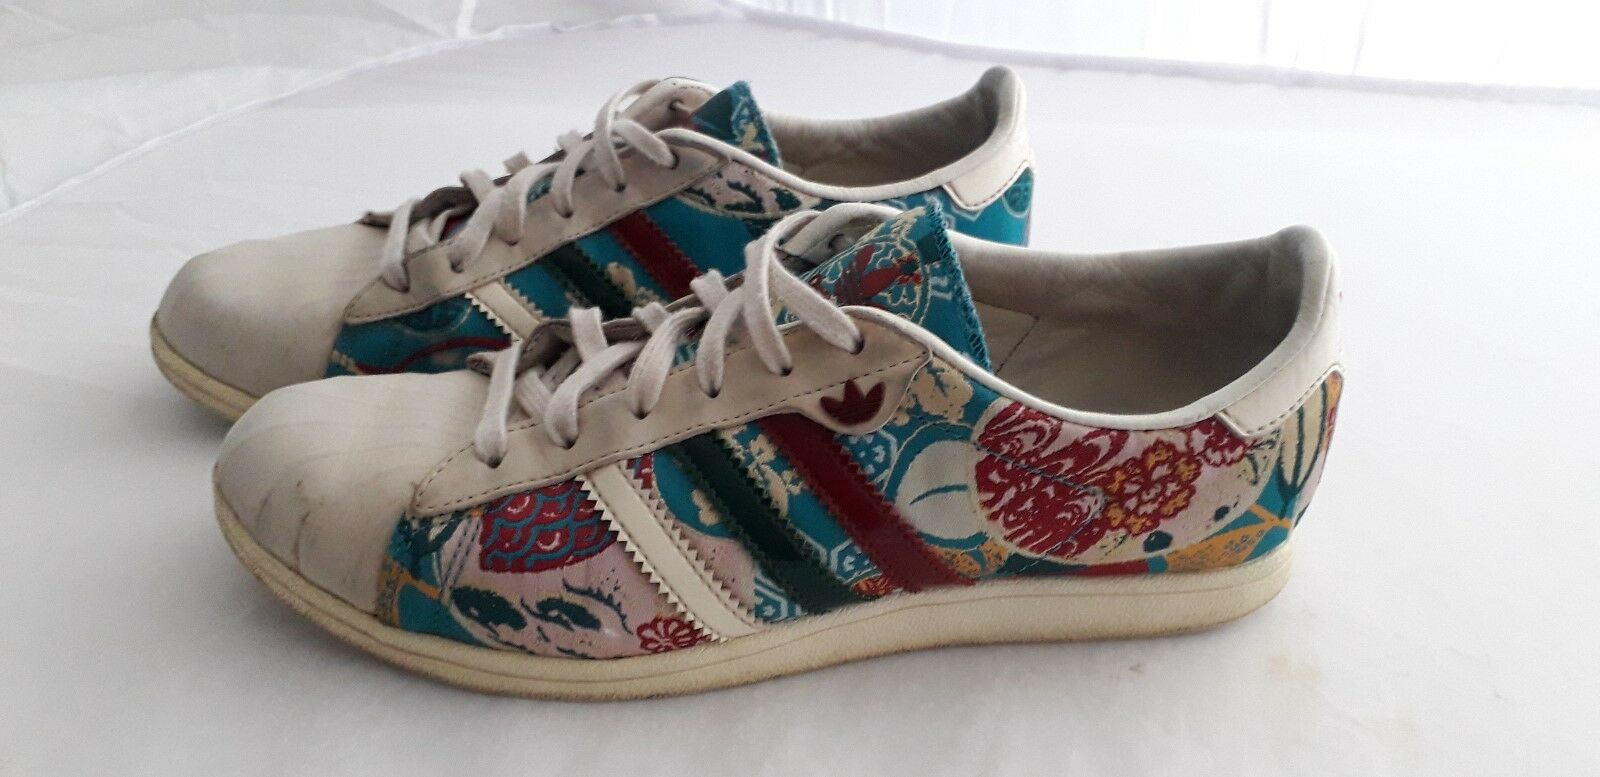 Adidas Vintage (rare) size 4 turquoise pumps. FAST POSTAGE